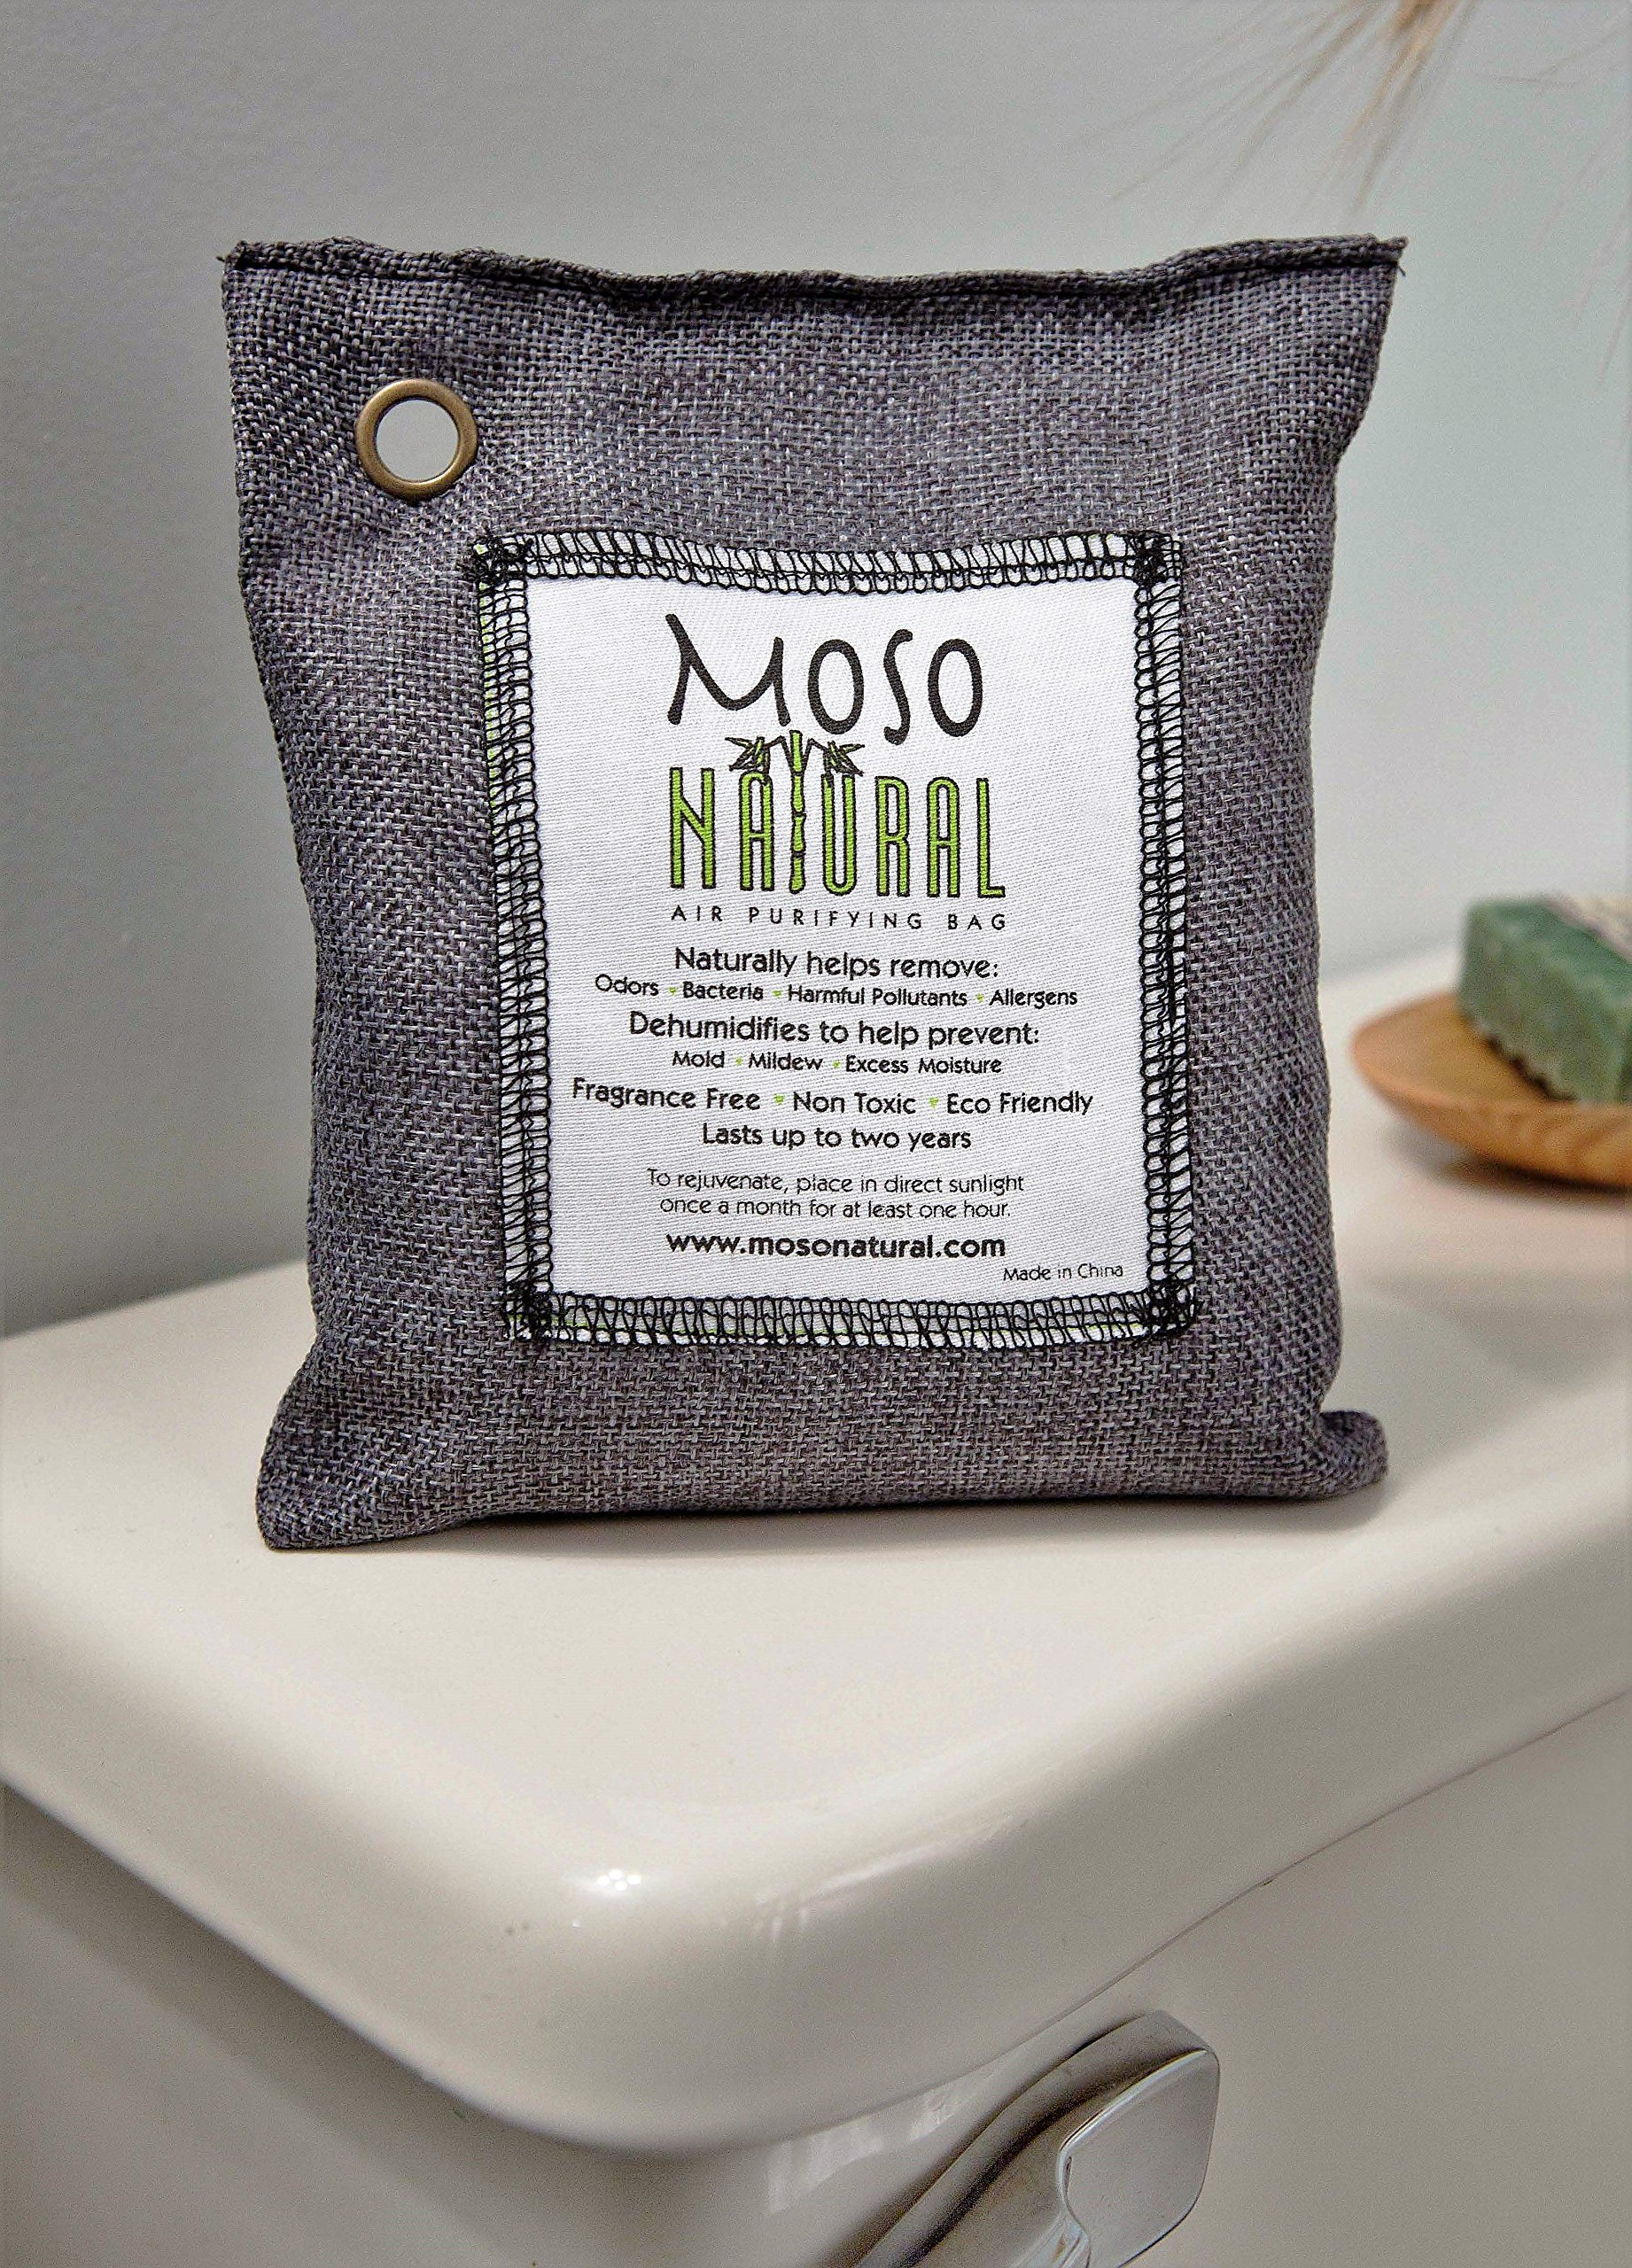 Two (2) Moso Natural Air Purifying Bags 1-200g and 1-500g, Charcoal